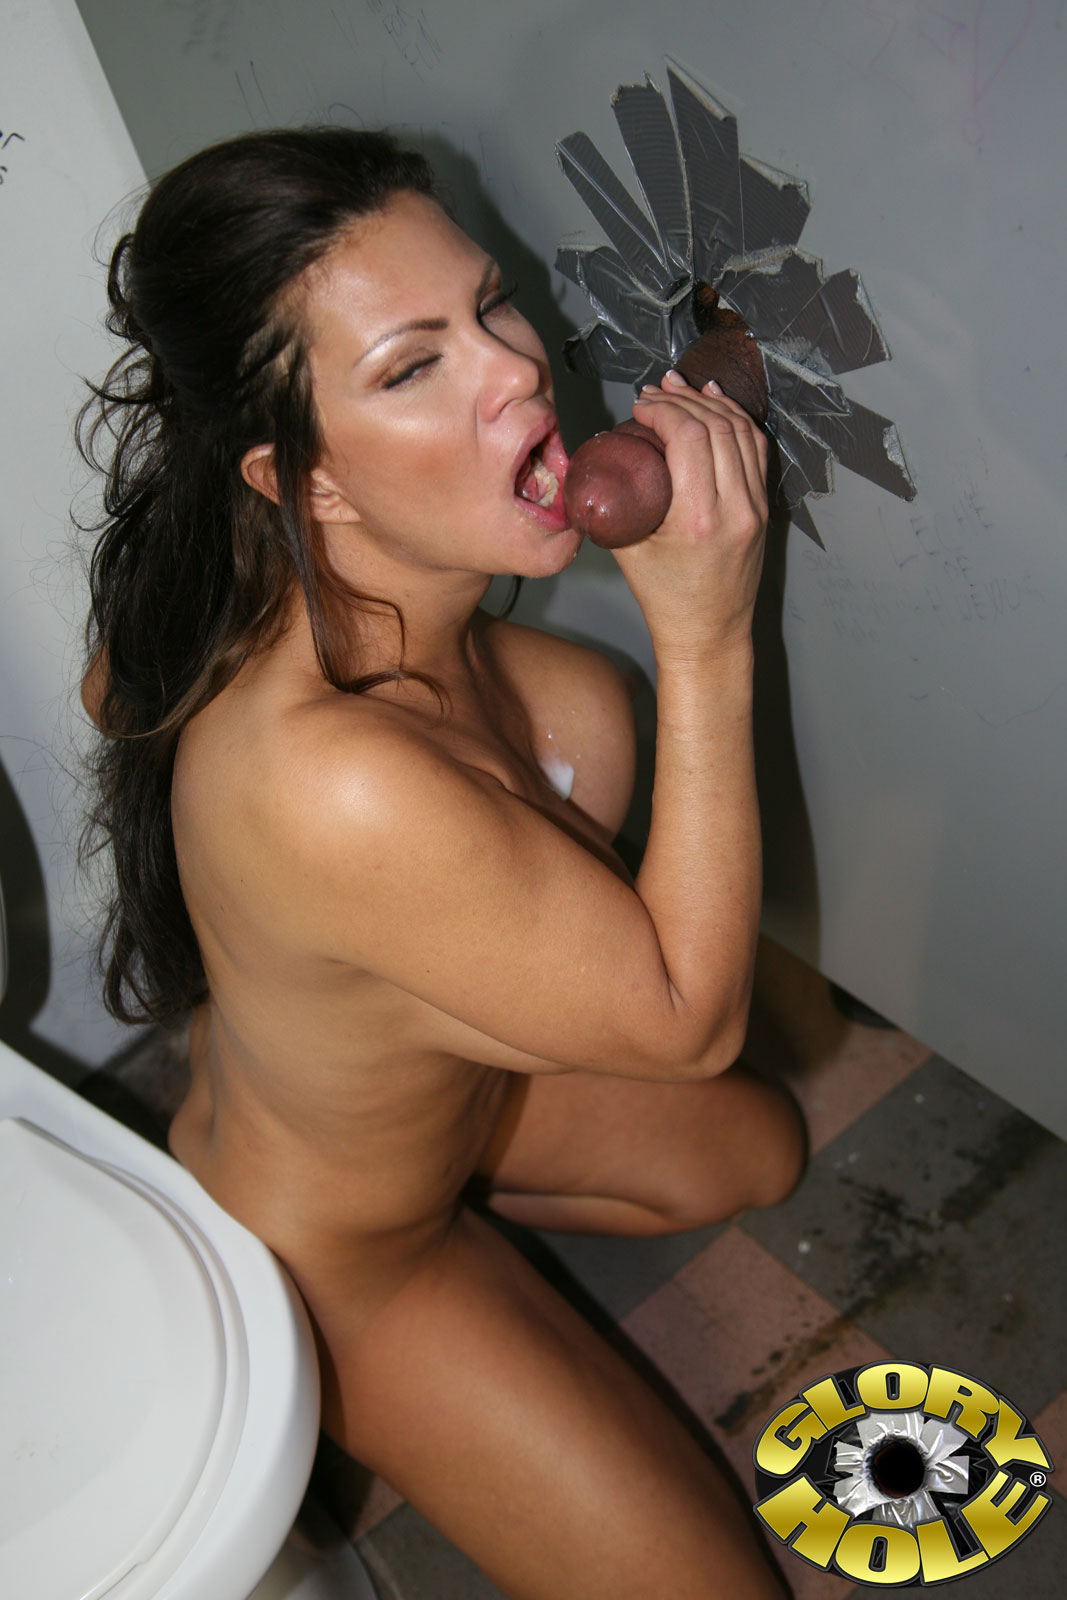 galleries GloryHole content teri weigel pic 30